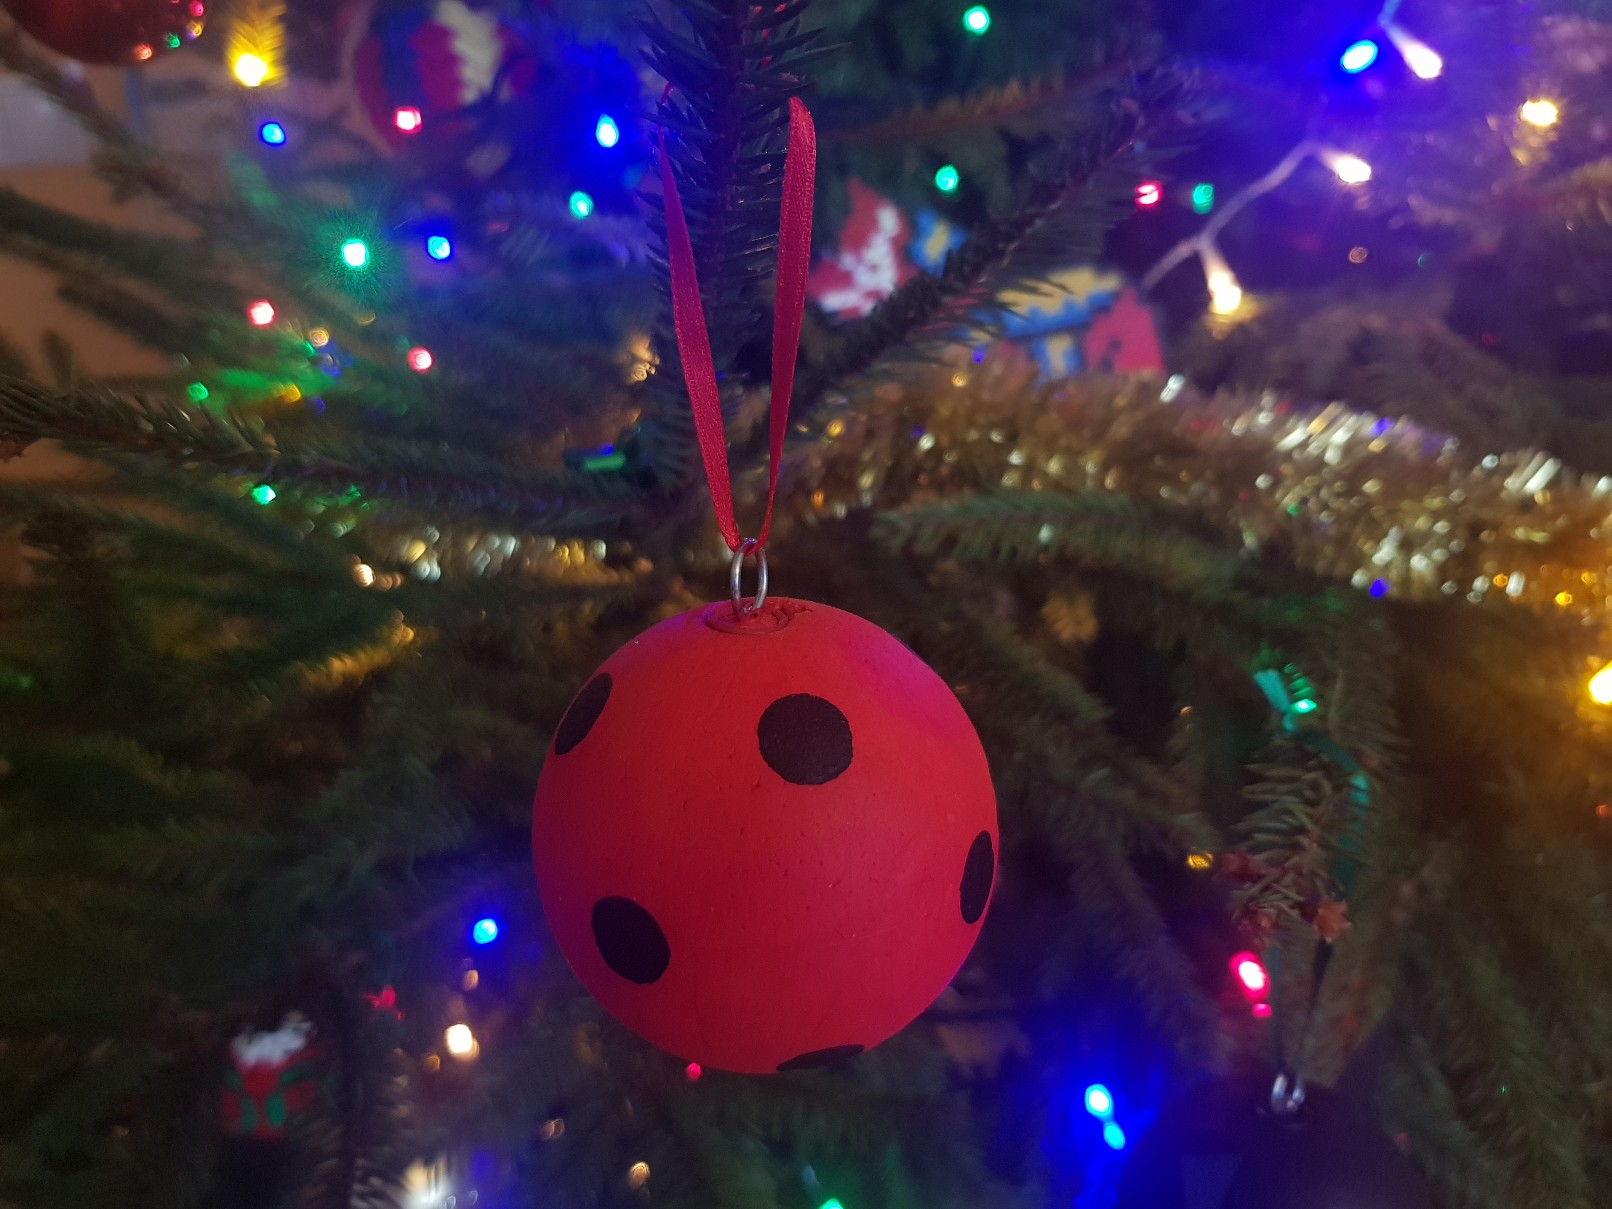 miraculous ladybug chat noir baubles red tree